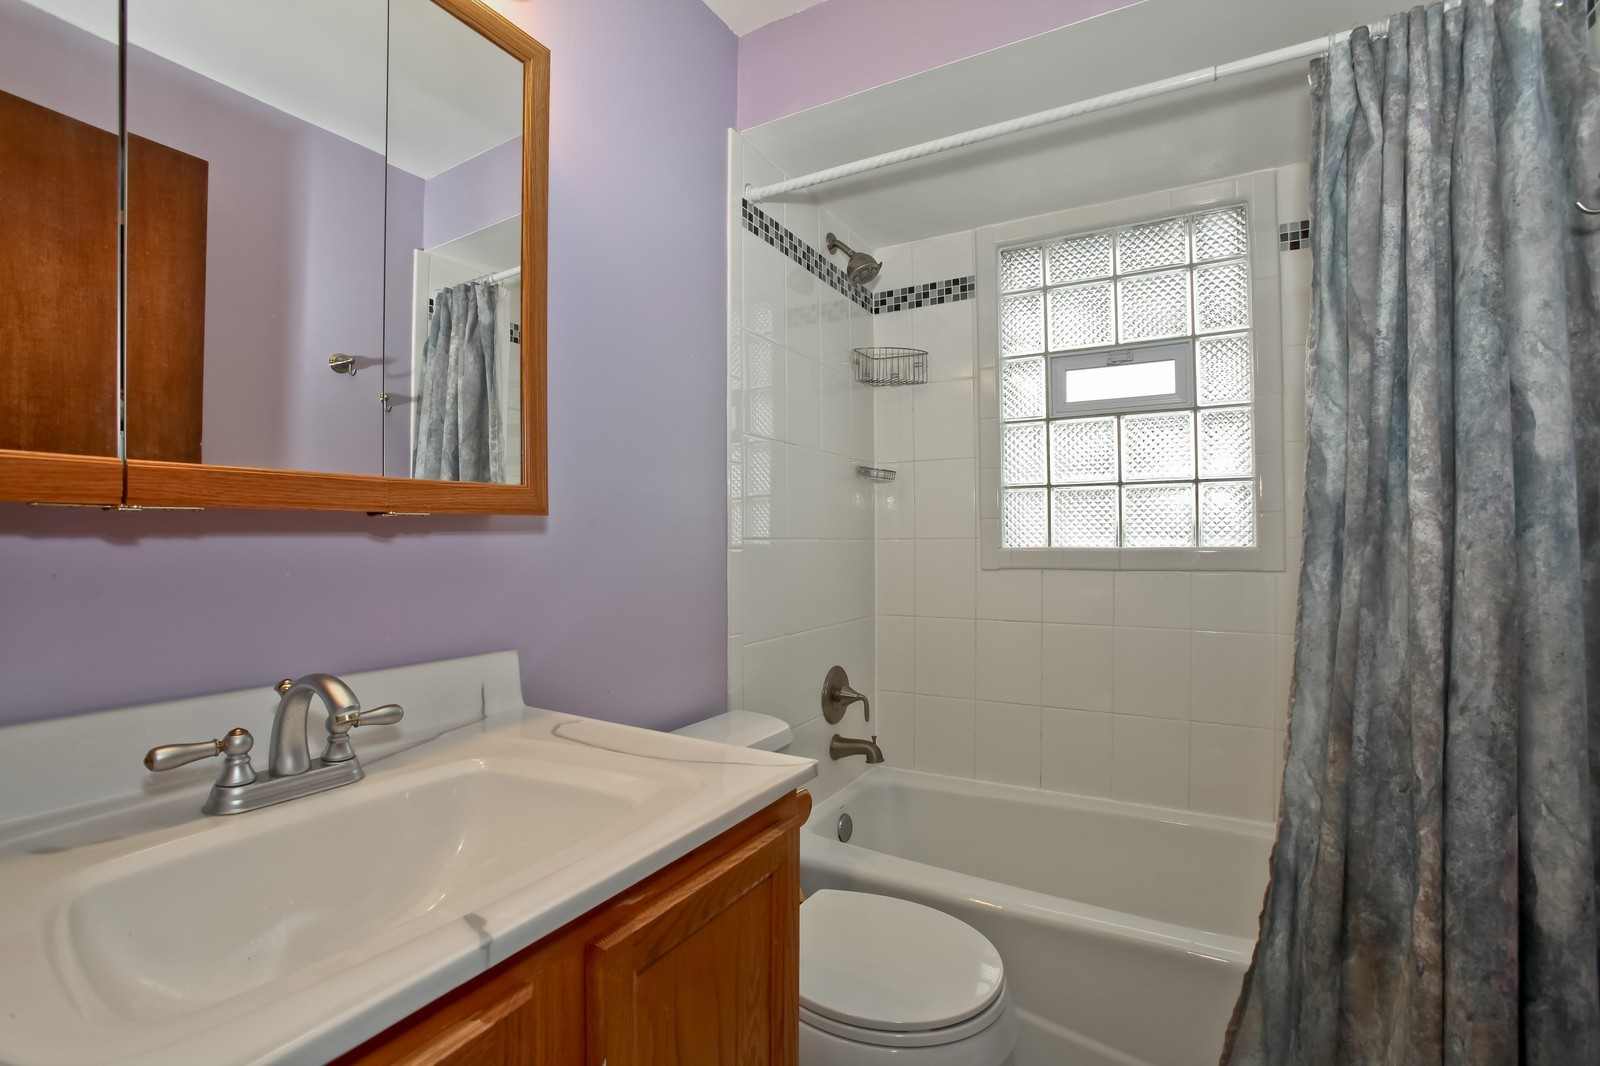 Real Estate Photography - 7609 W 173rd St, Tinley Park, IL, 60477 - Bathroom